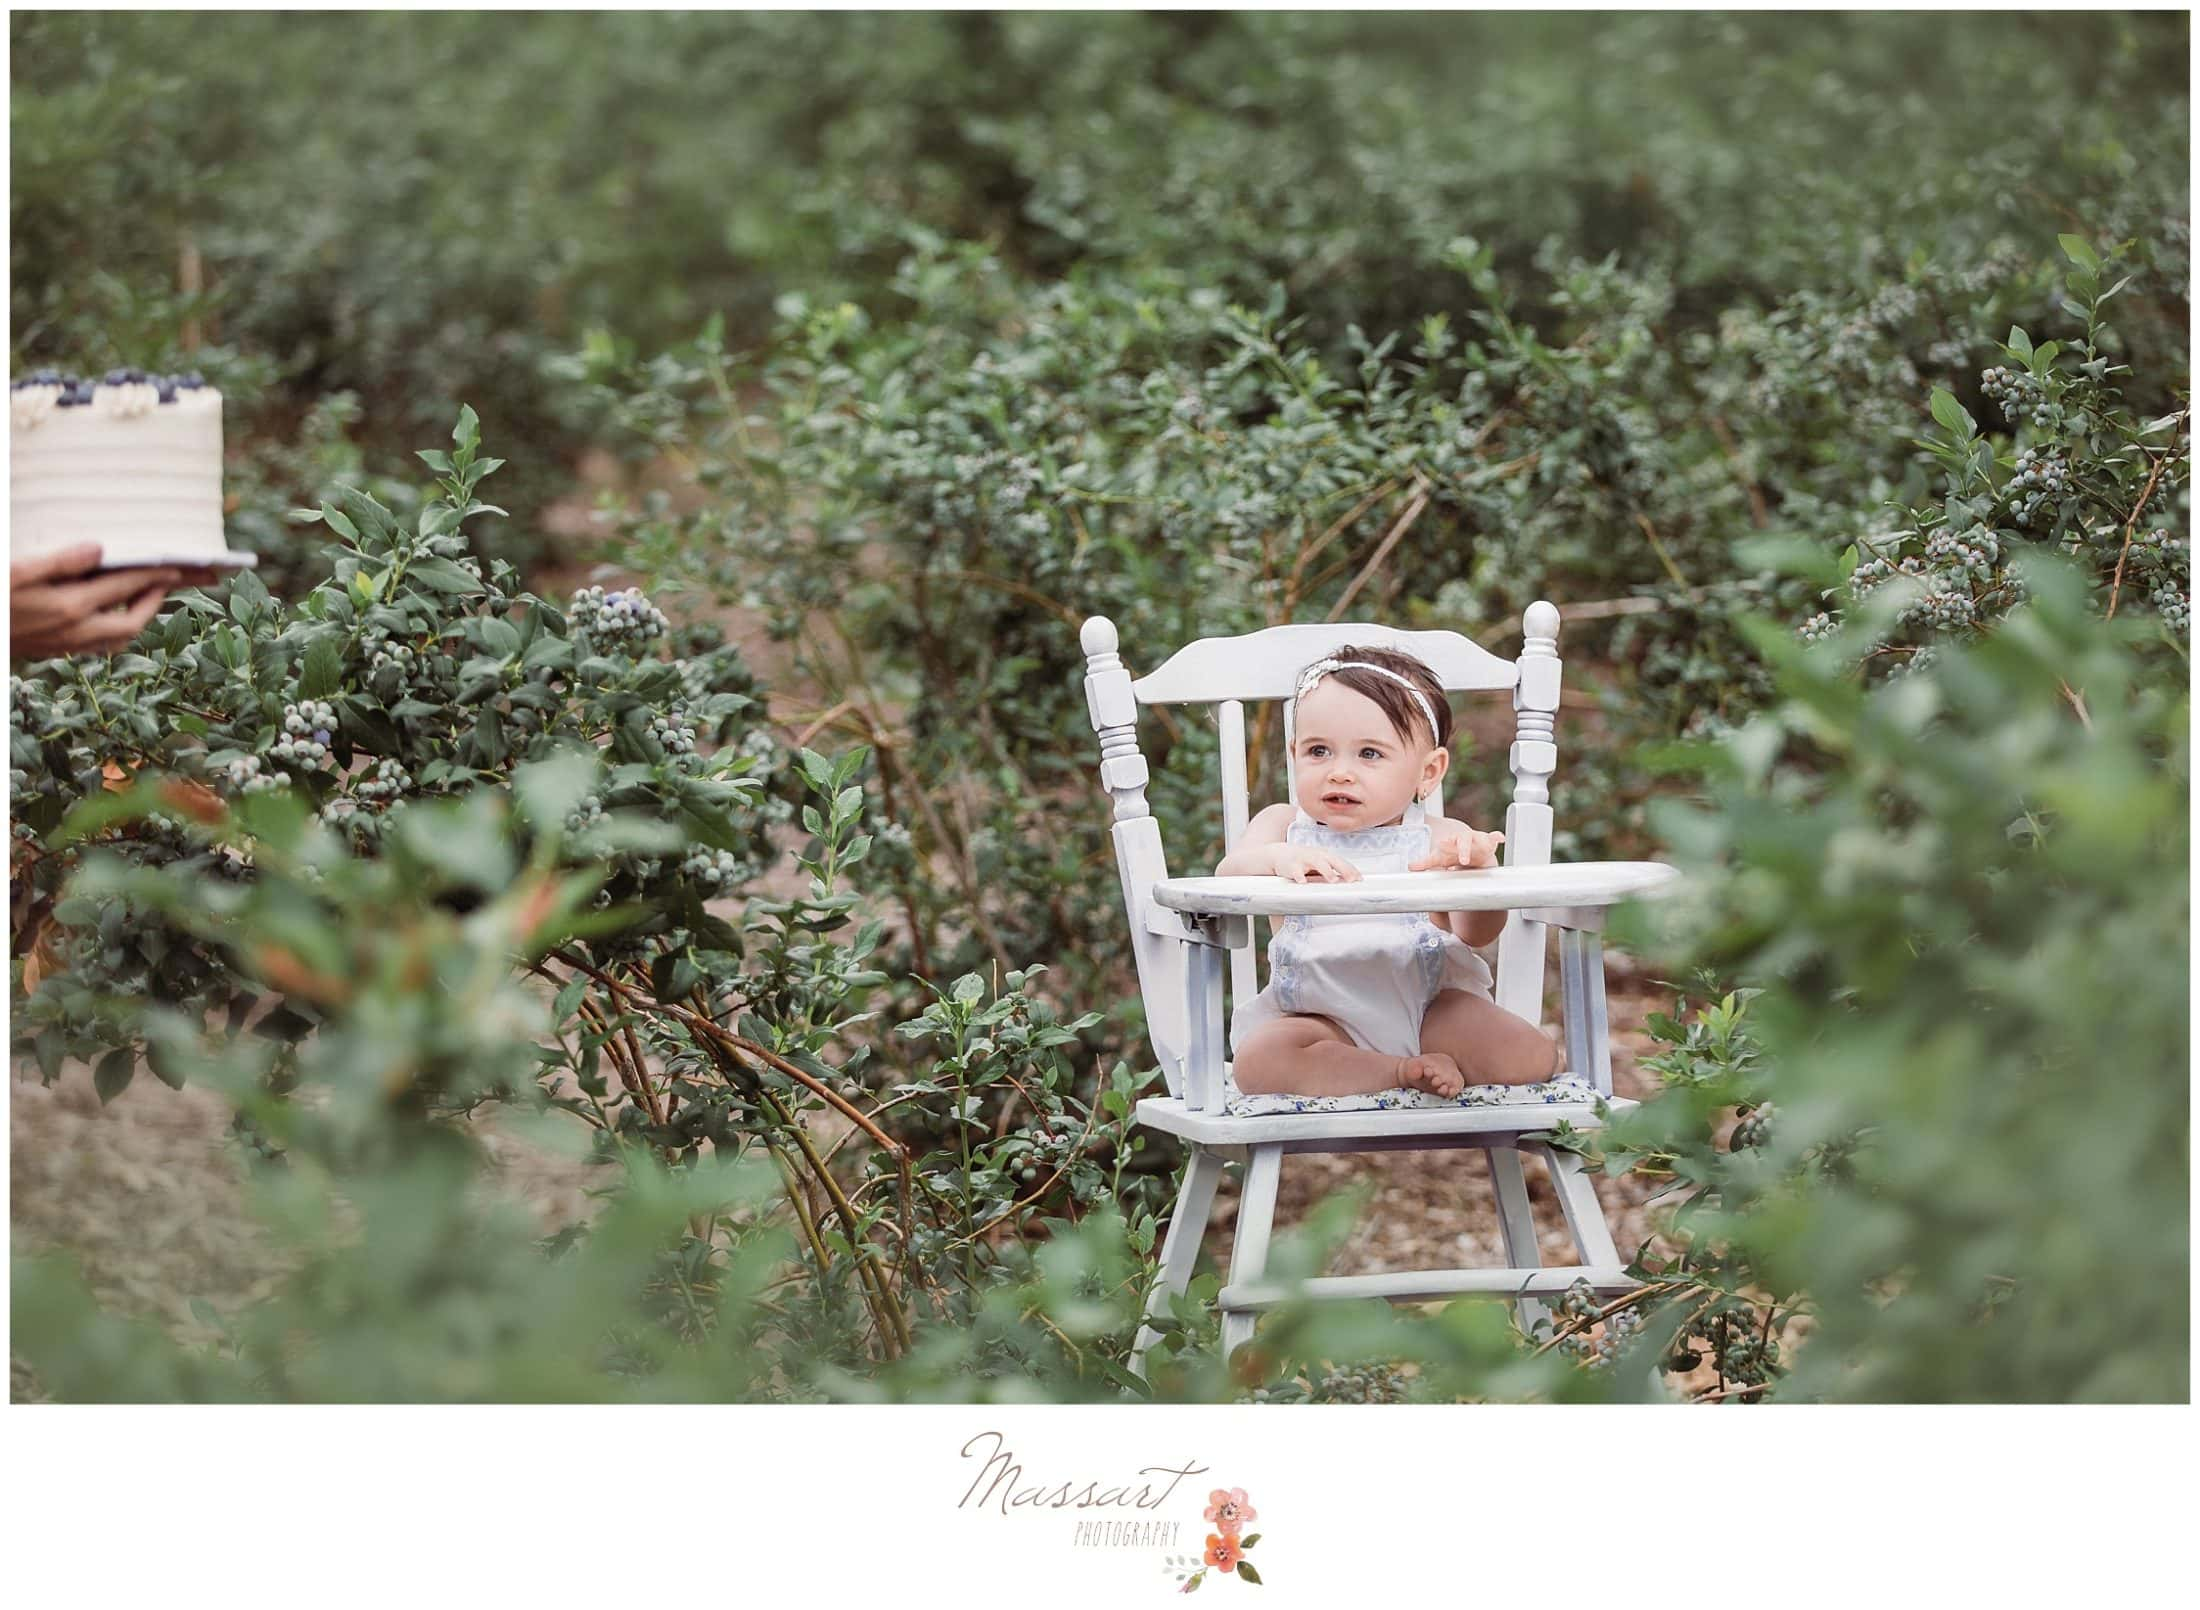 Baby girl in a high chair at the blueberry farm during her cake smash session photographed by Massart Photography RI